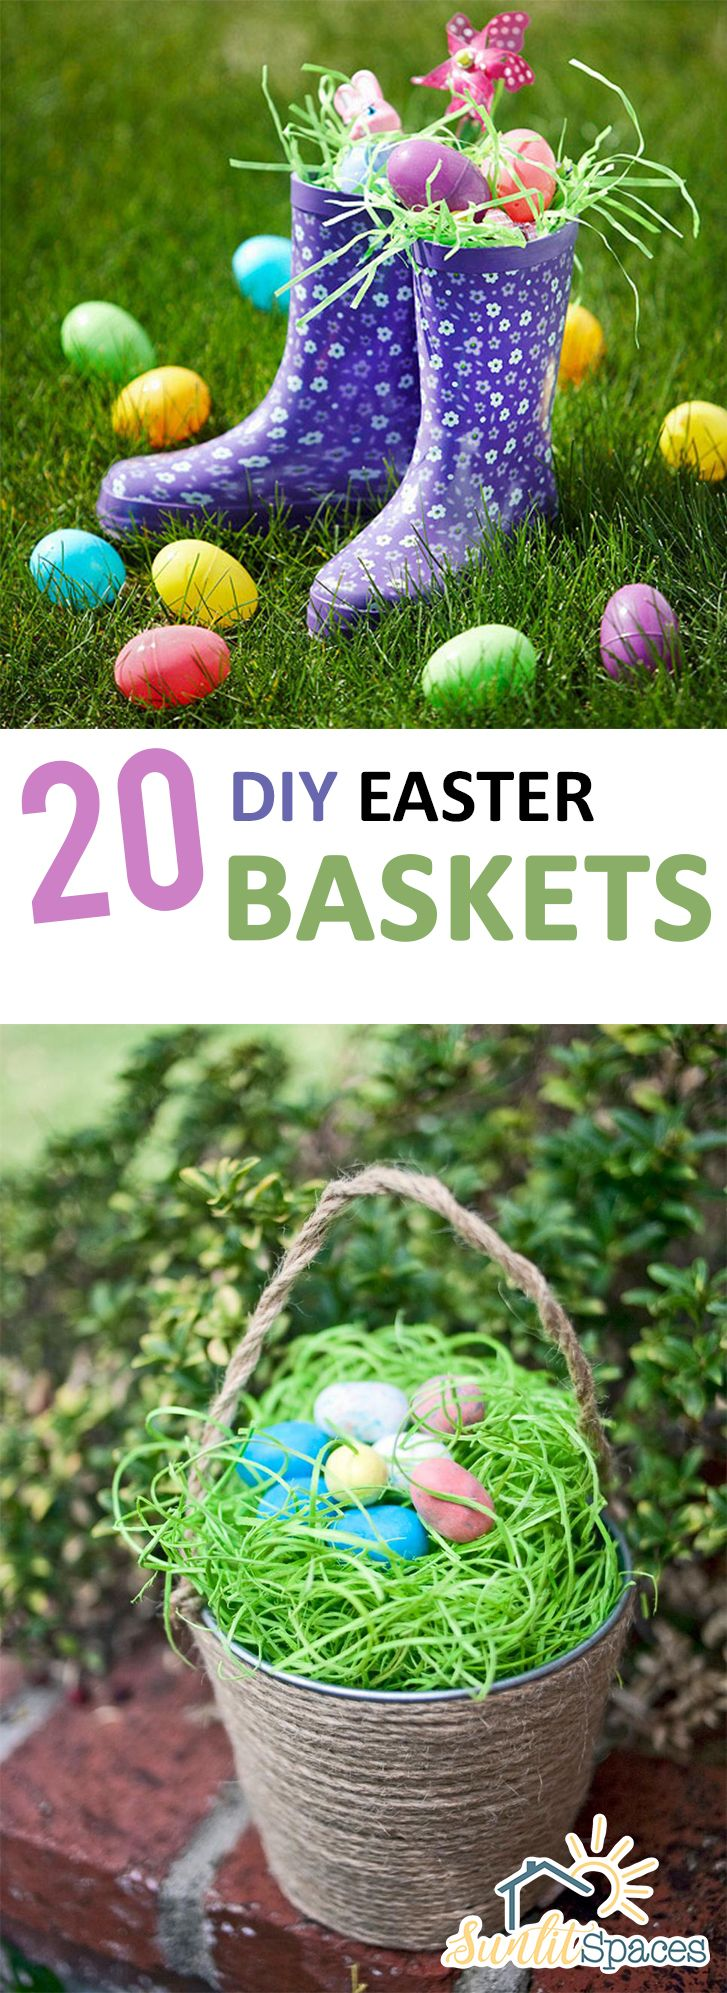 Best 25 homemade easter baskets ideas on pinterest easter 2015 20 diy easter baskets negle Gallery